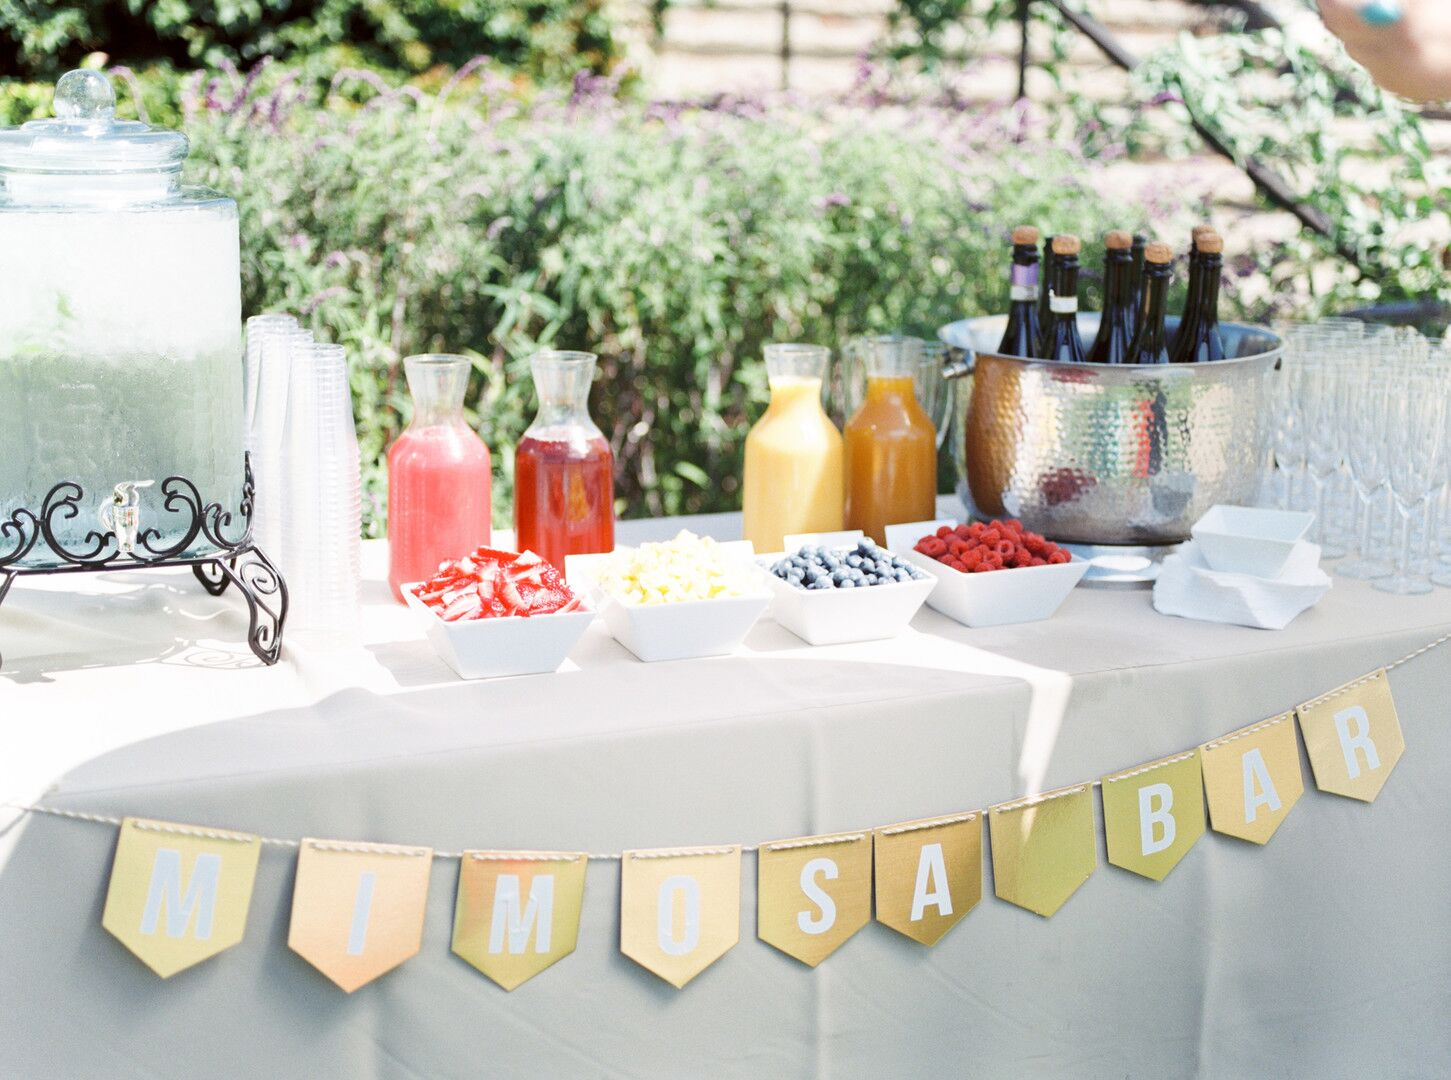 wwww.santabarbawedding.com | Planner: Vintage Heart Events | Ceremony Venue: Serra Cross Park | Photographer: Haley Richter Photography | Mimosa Bar